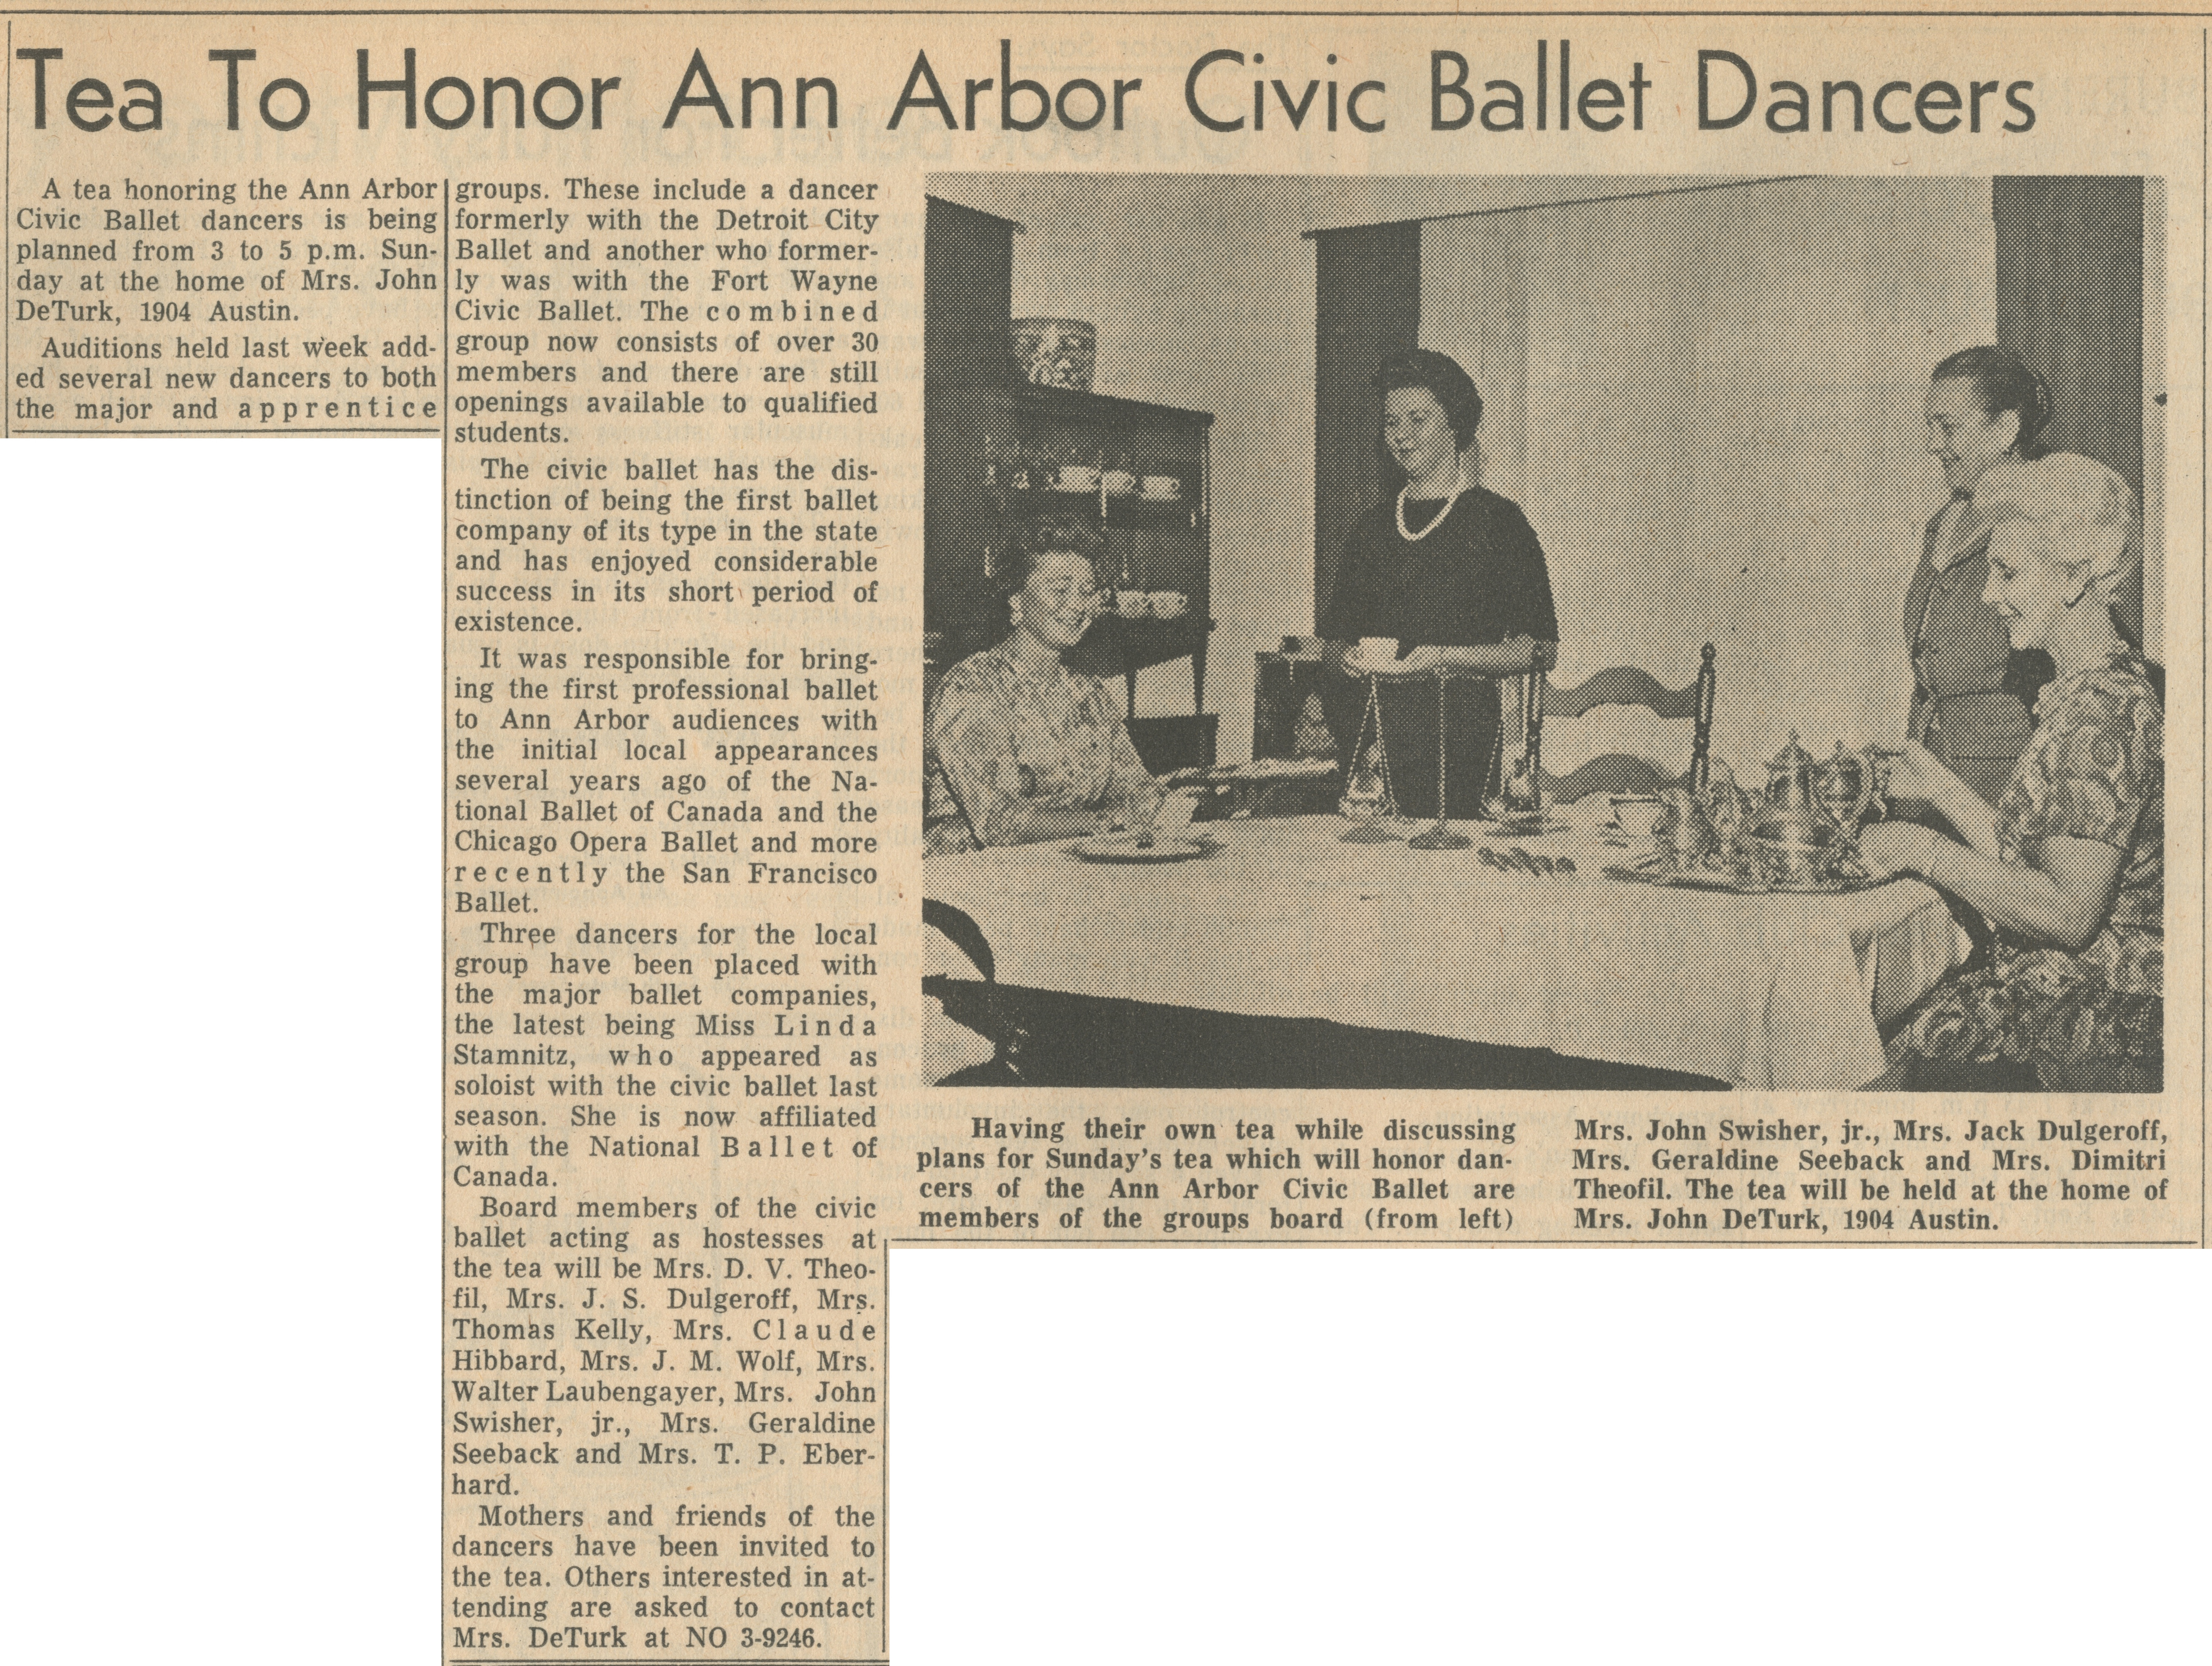 Tea To Honor Ann Arbor Civic Ballet Dancers image